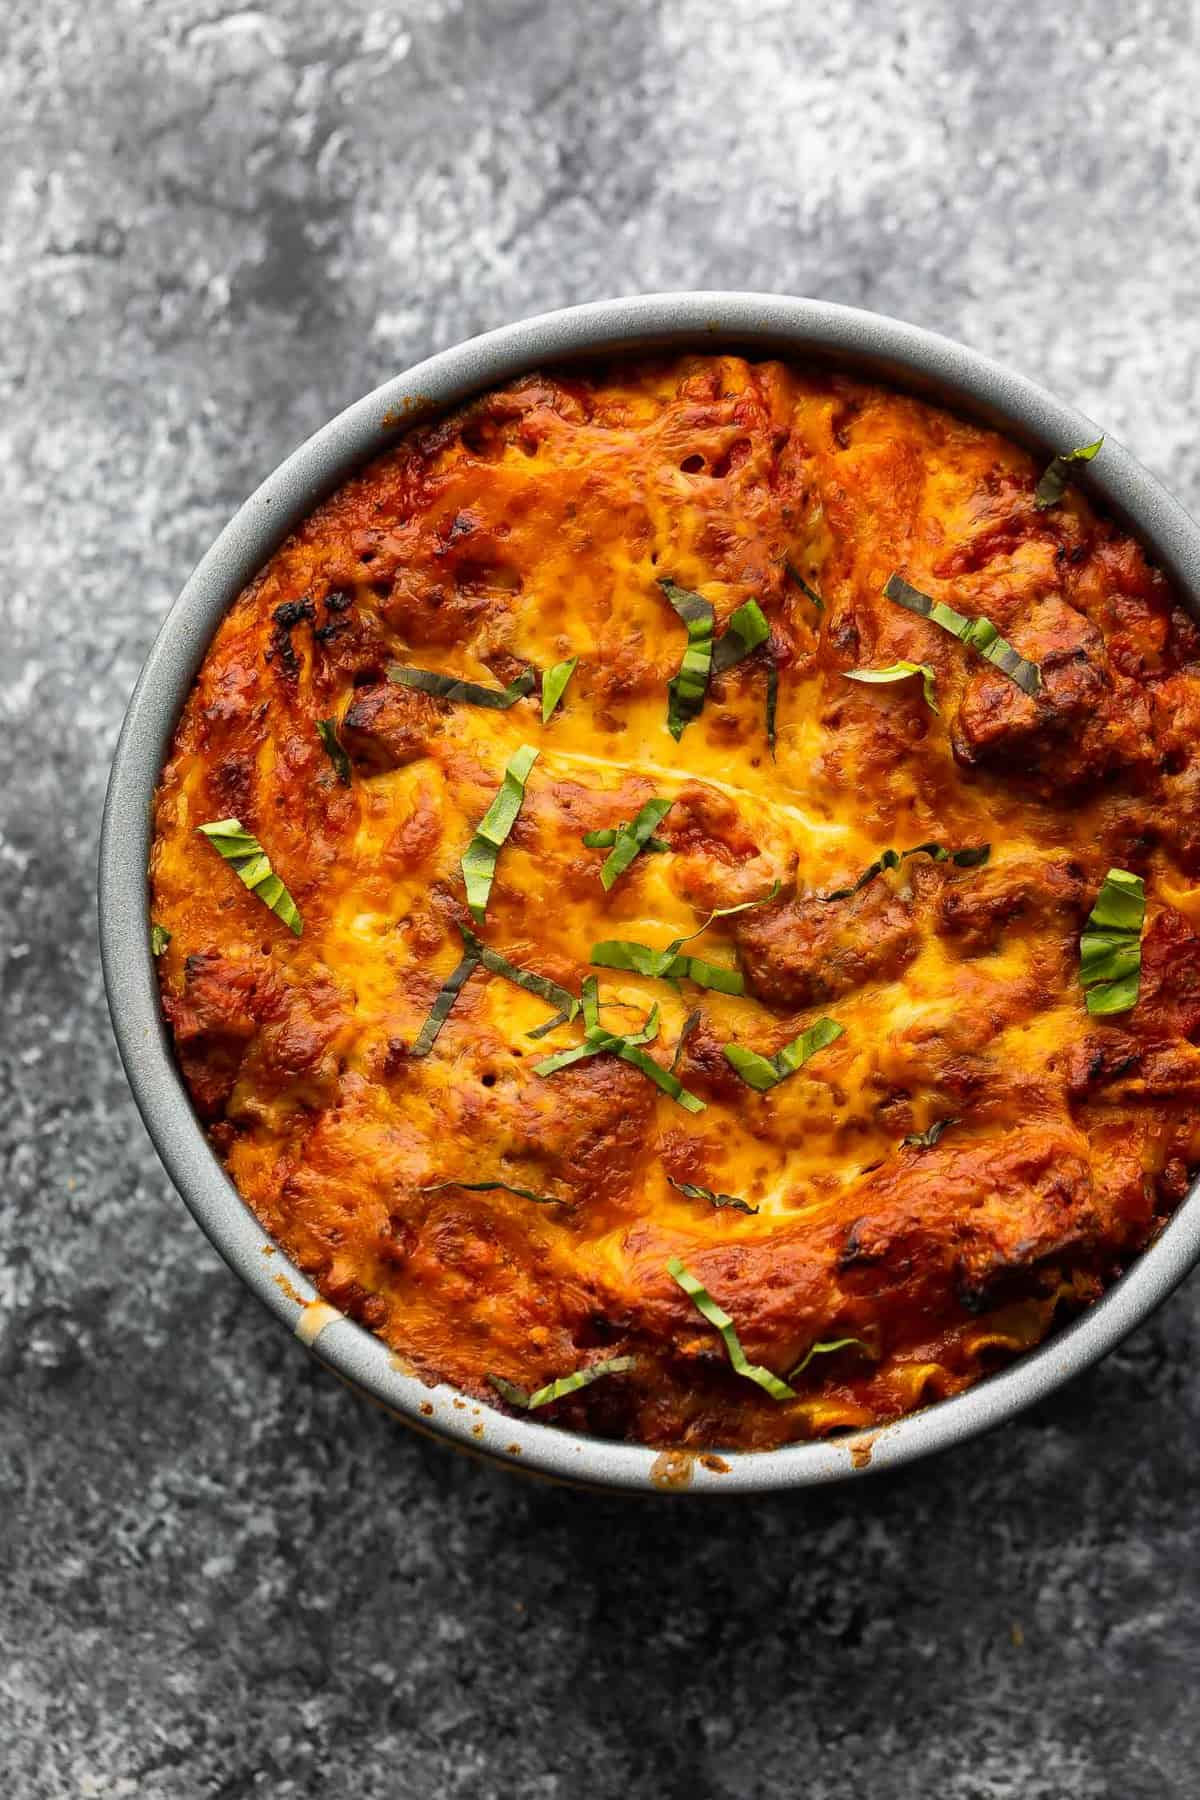 Lasagna baked in a round cake pan